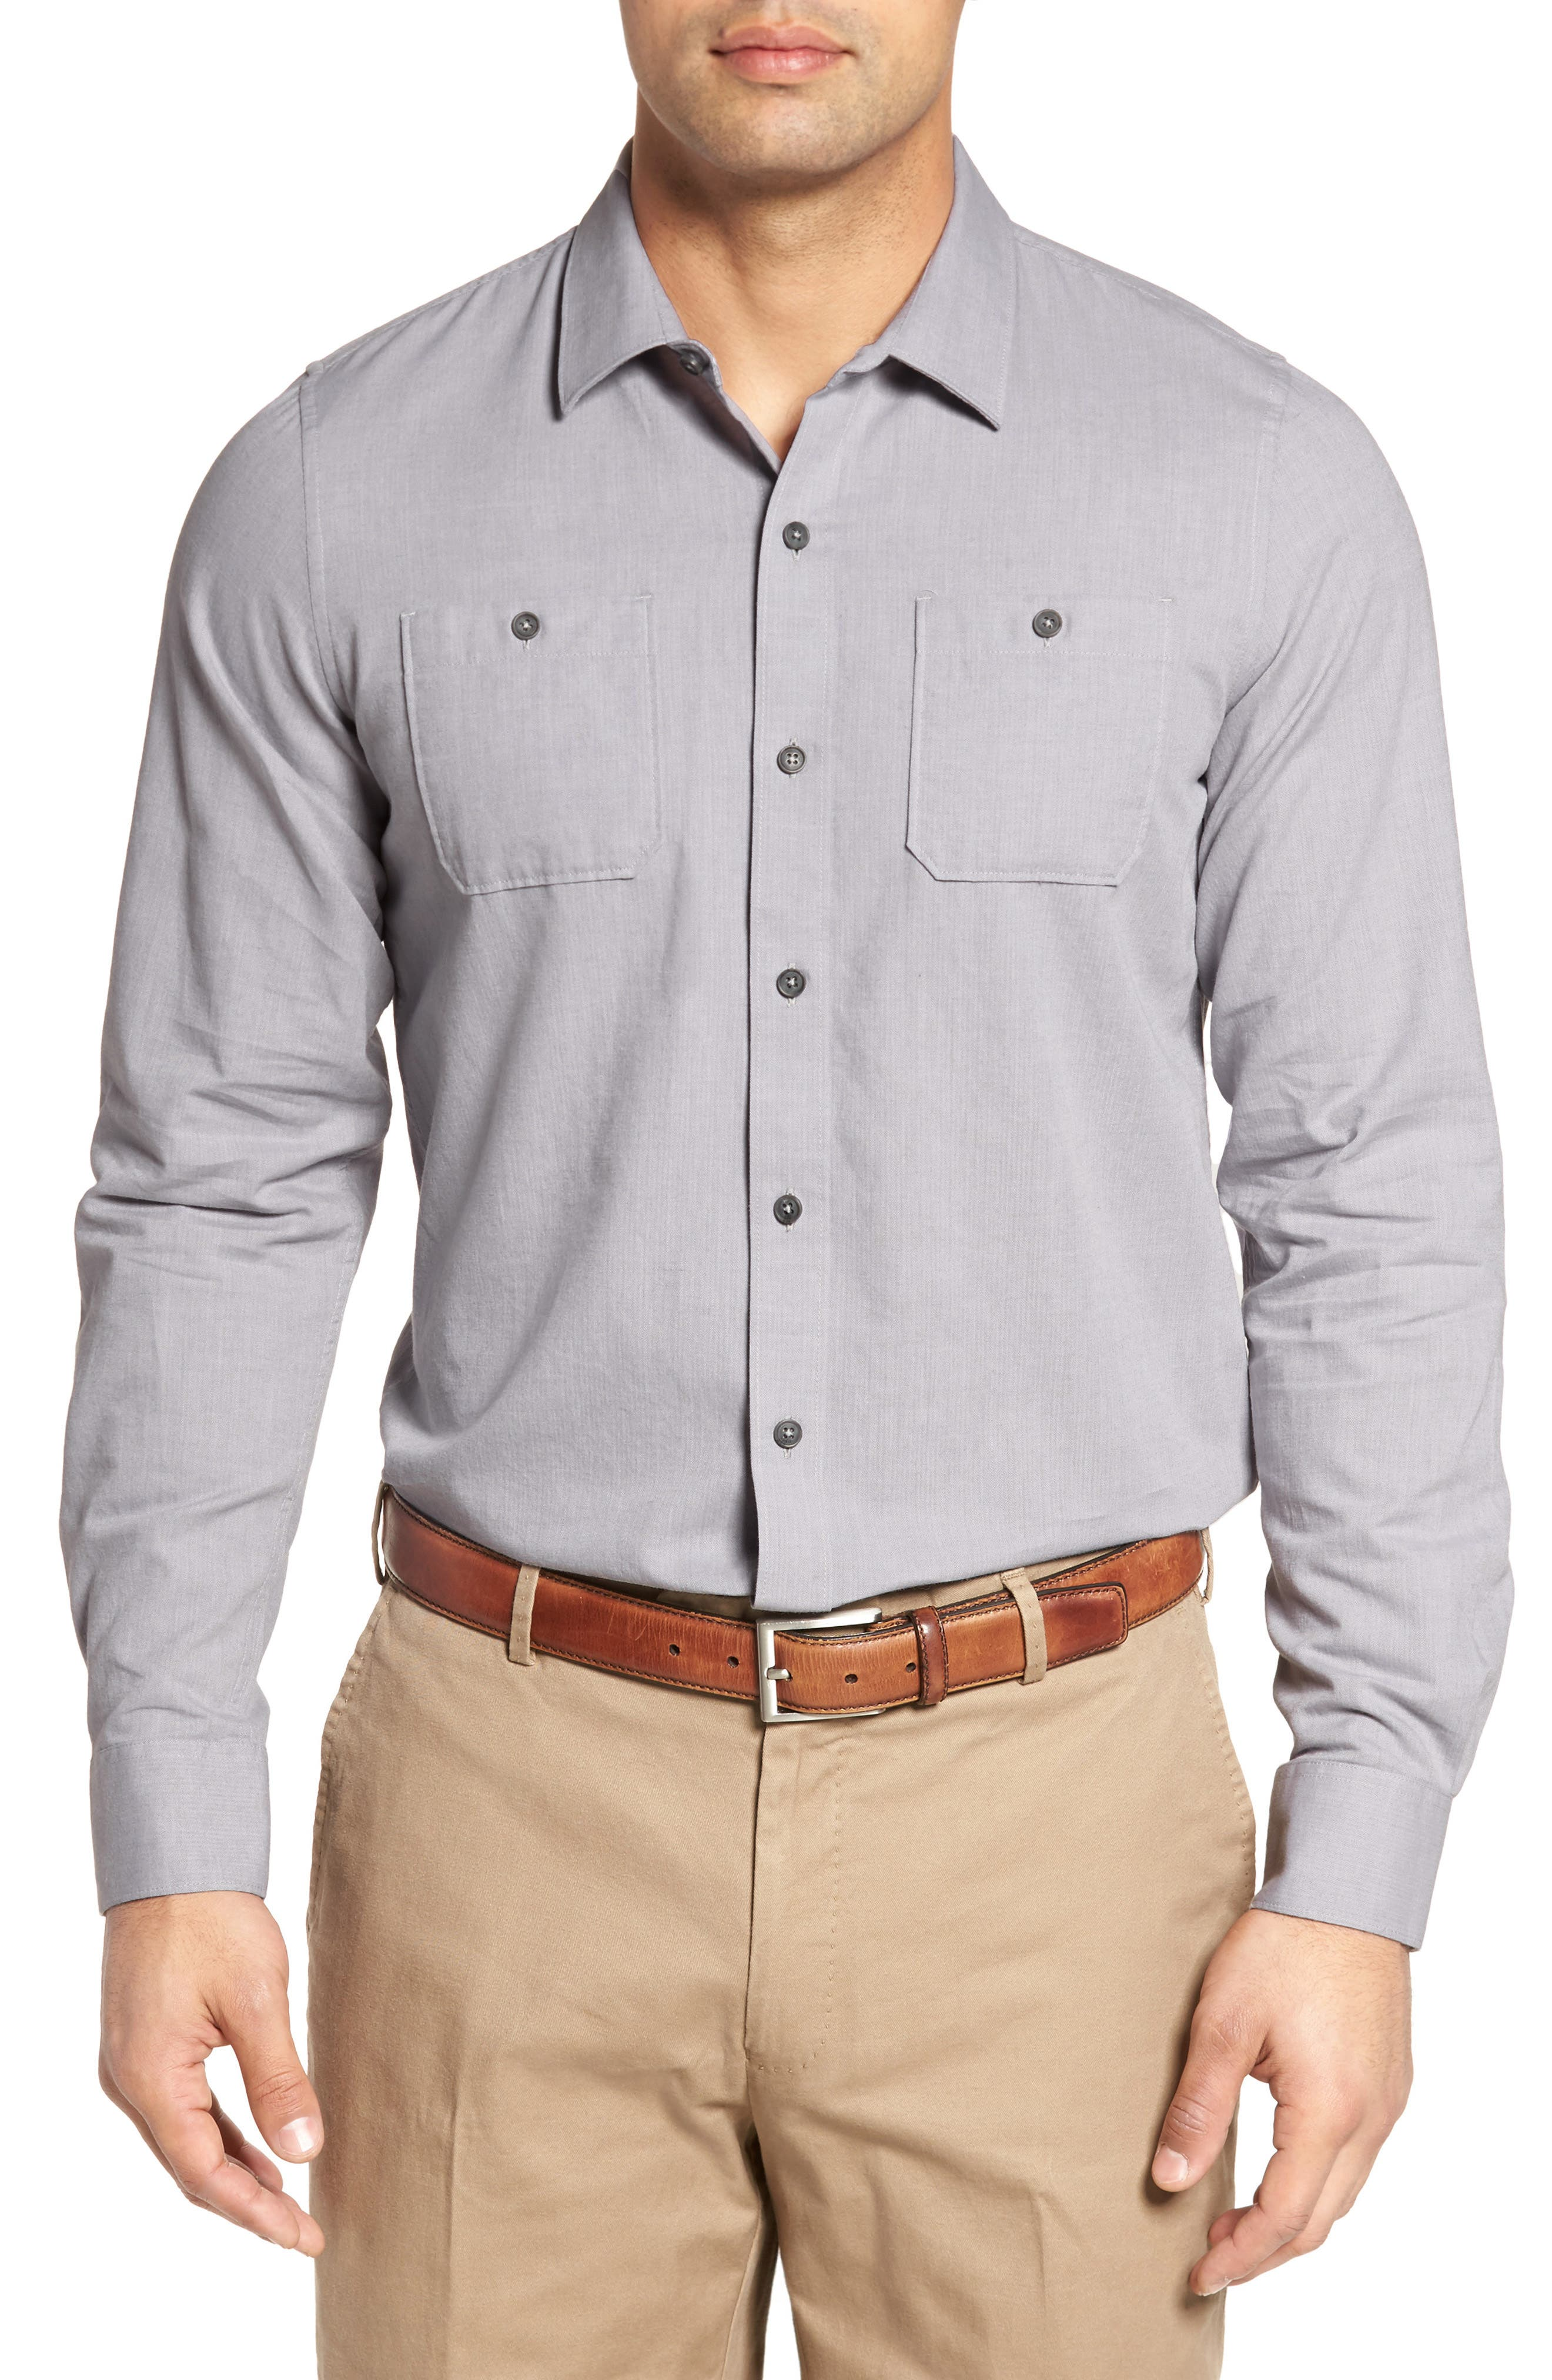 Alternate Image 1 Selected - Travis Mathew Gotemba Slim Fit Herringbone Sport Shirt